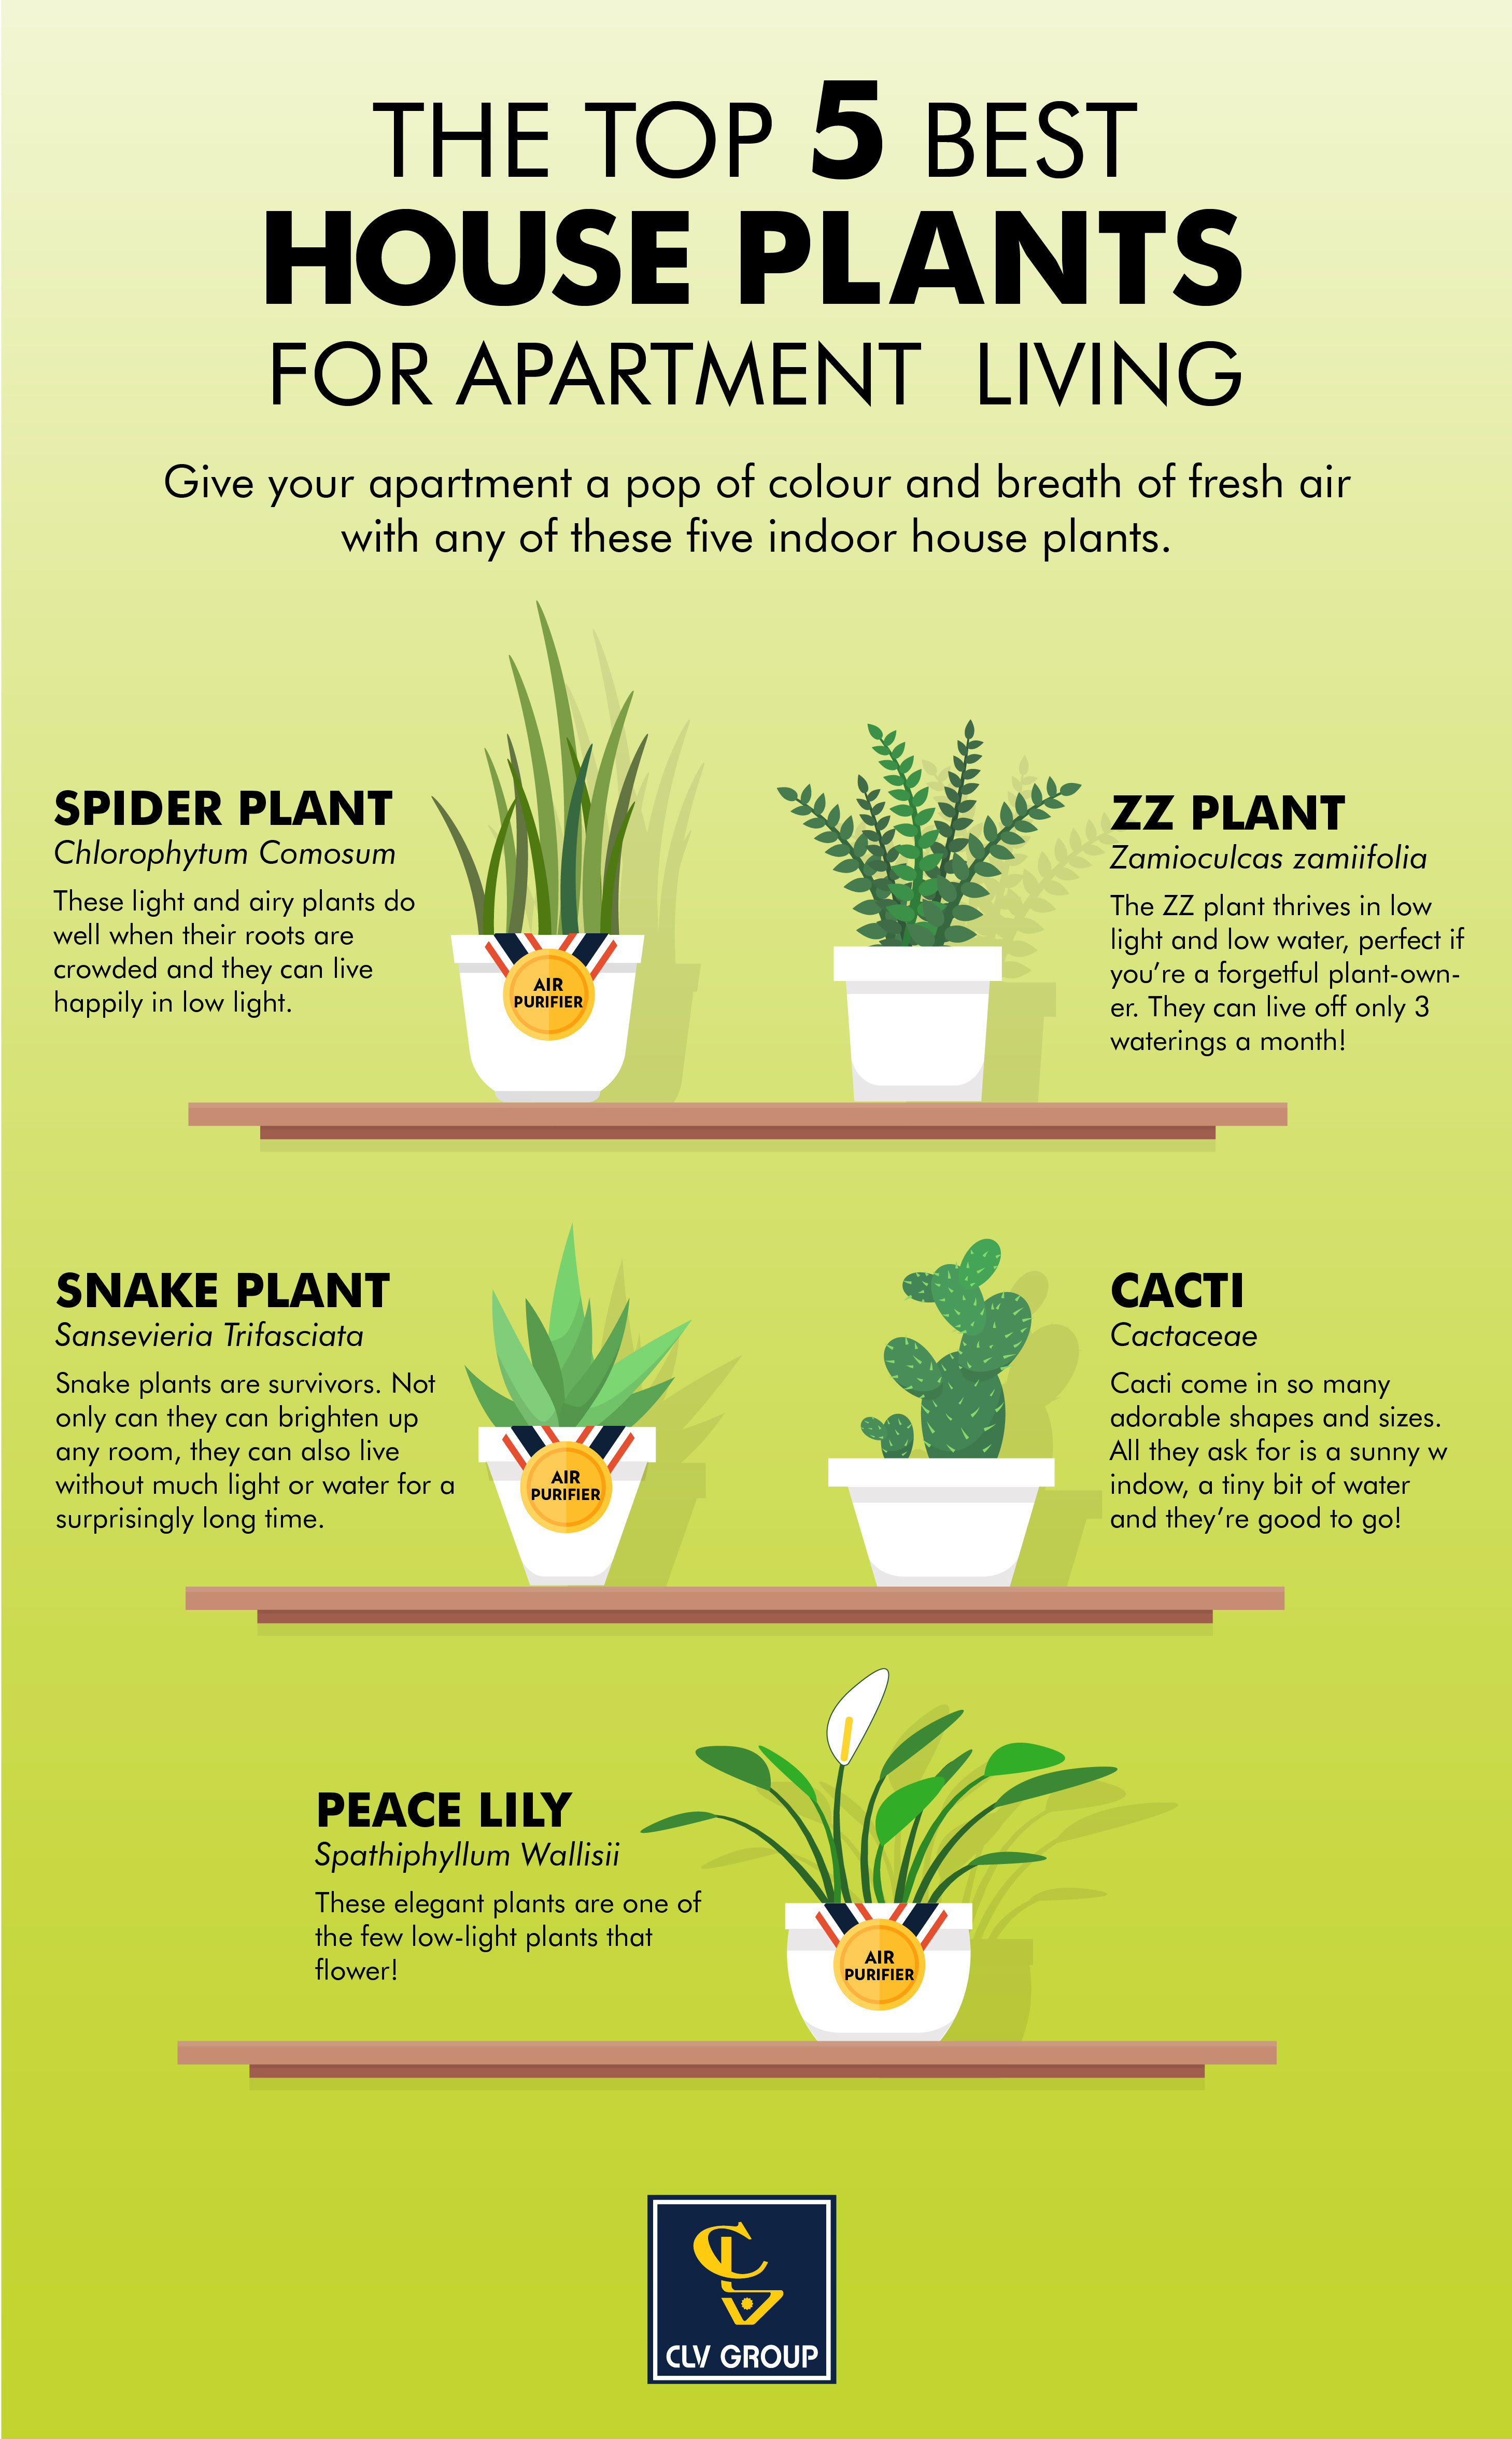 Top 5 Best Houseplants For Apartment Living Infographic